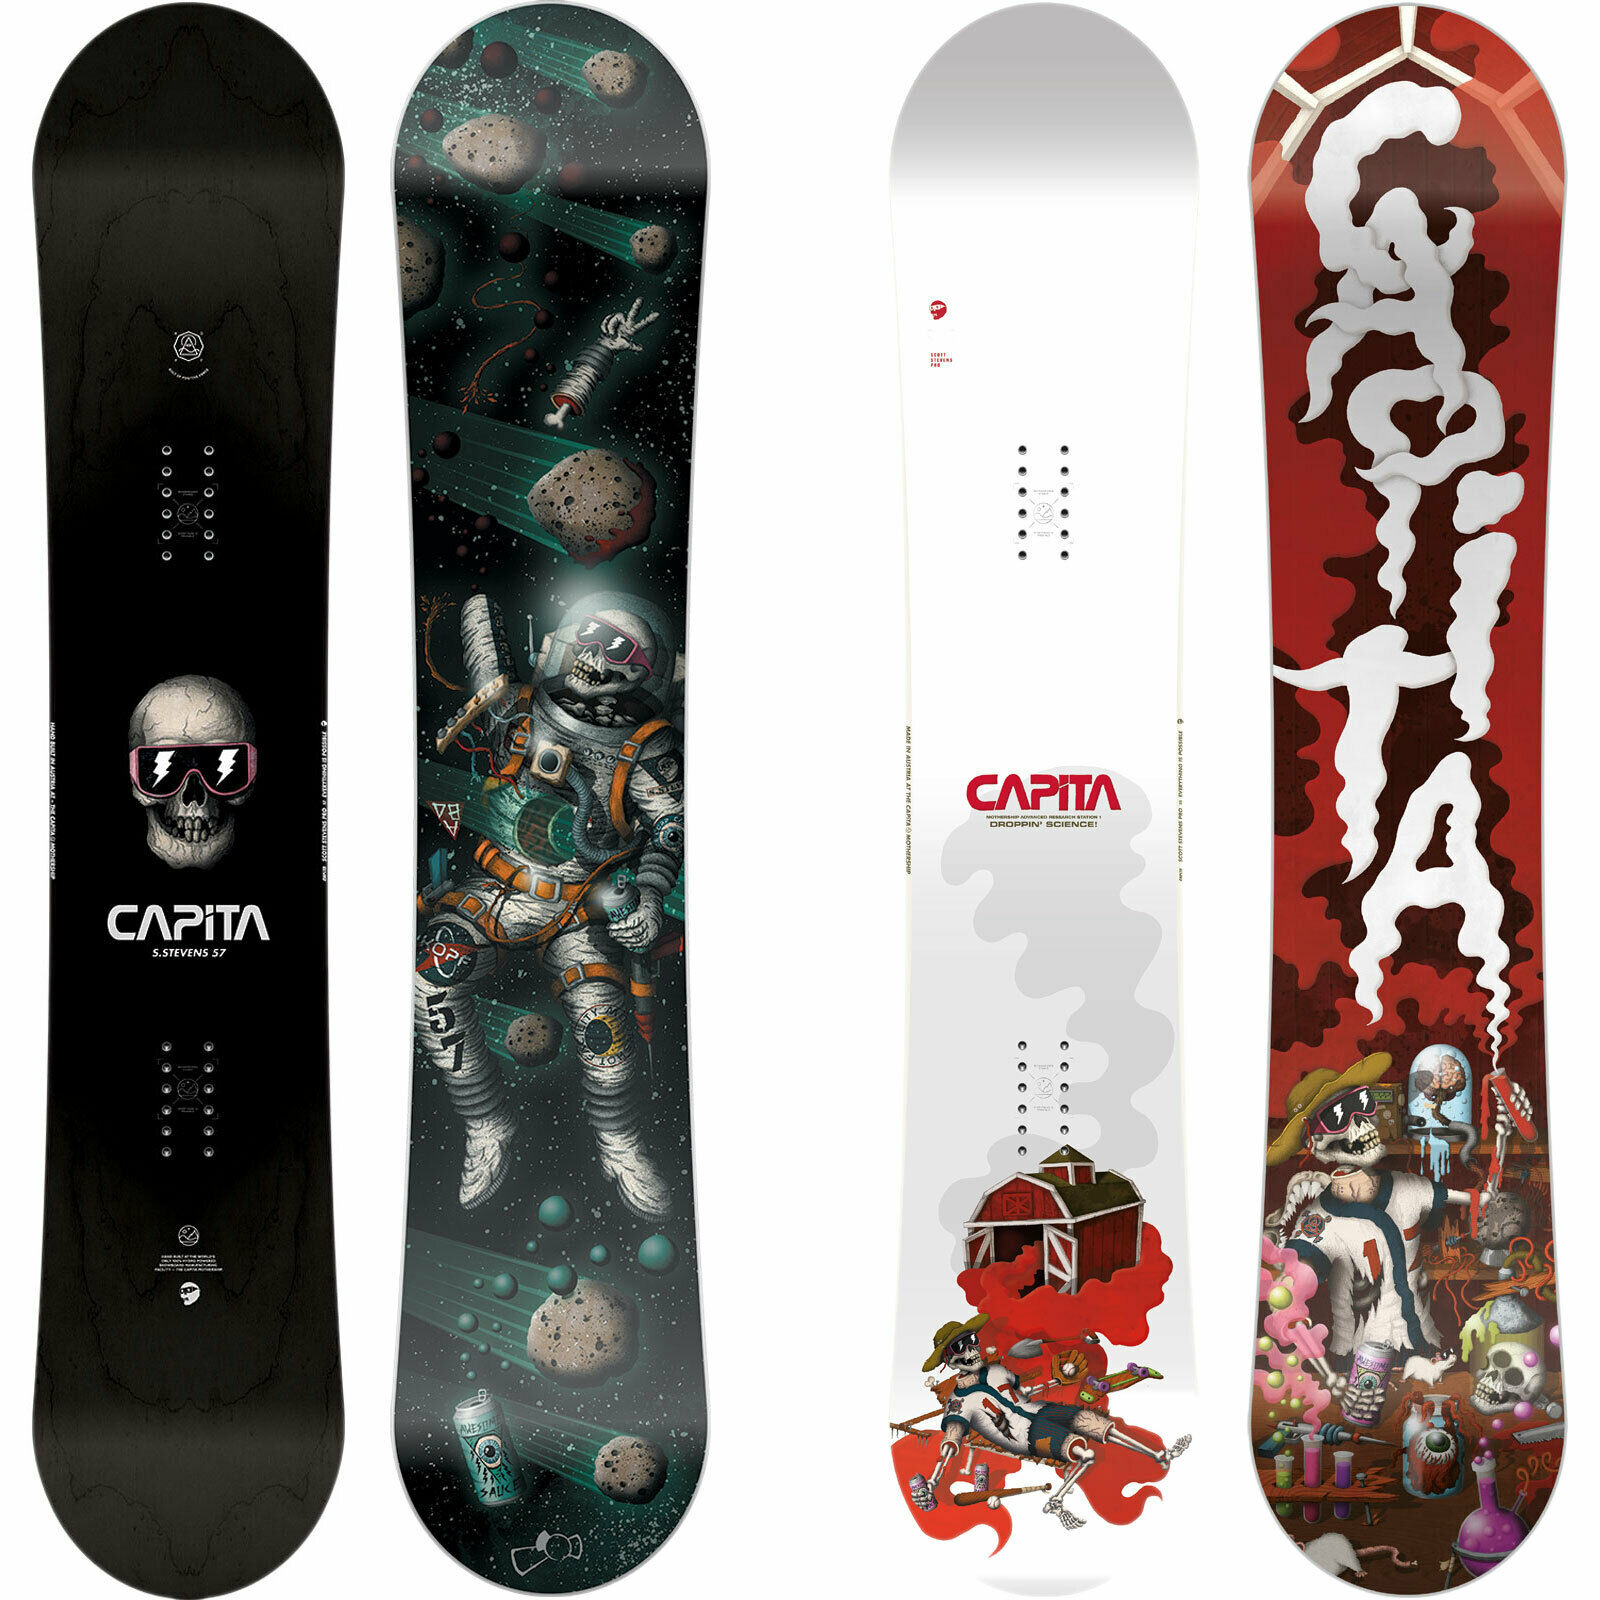 Capita Scott Stevens pro Model Freestyle Snowboard Twin Sie's Jib 2019-2020 New